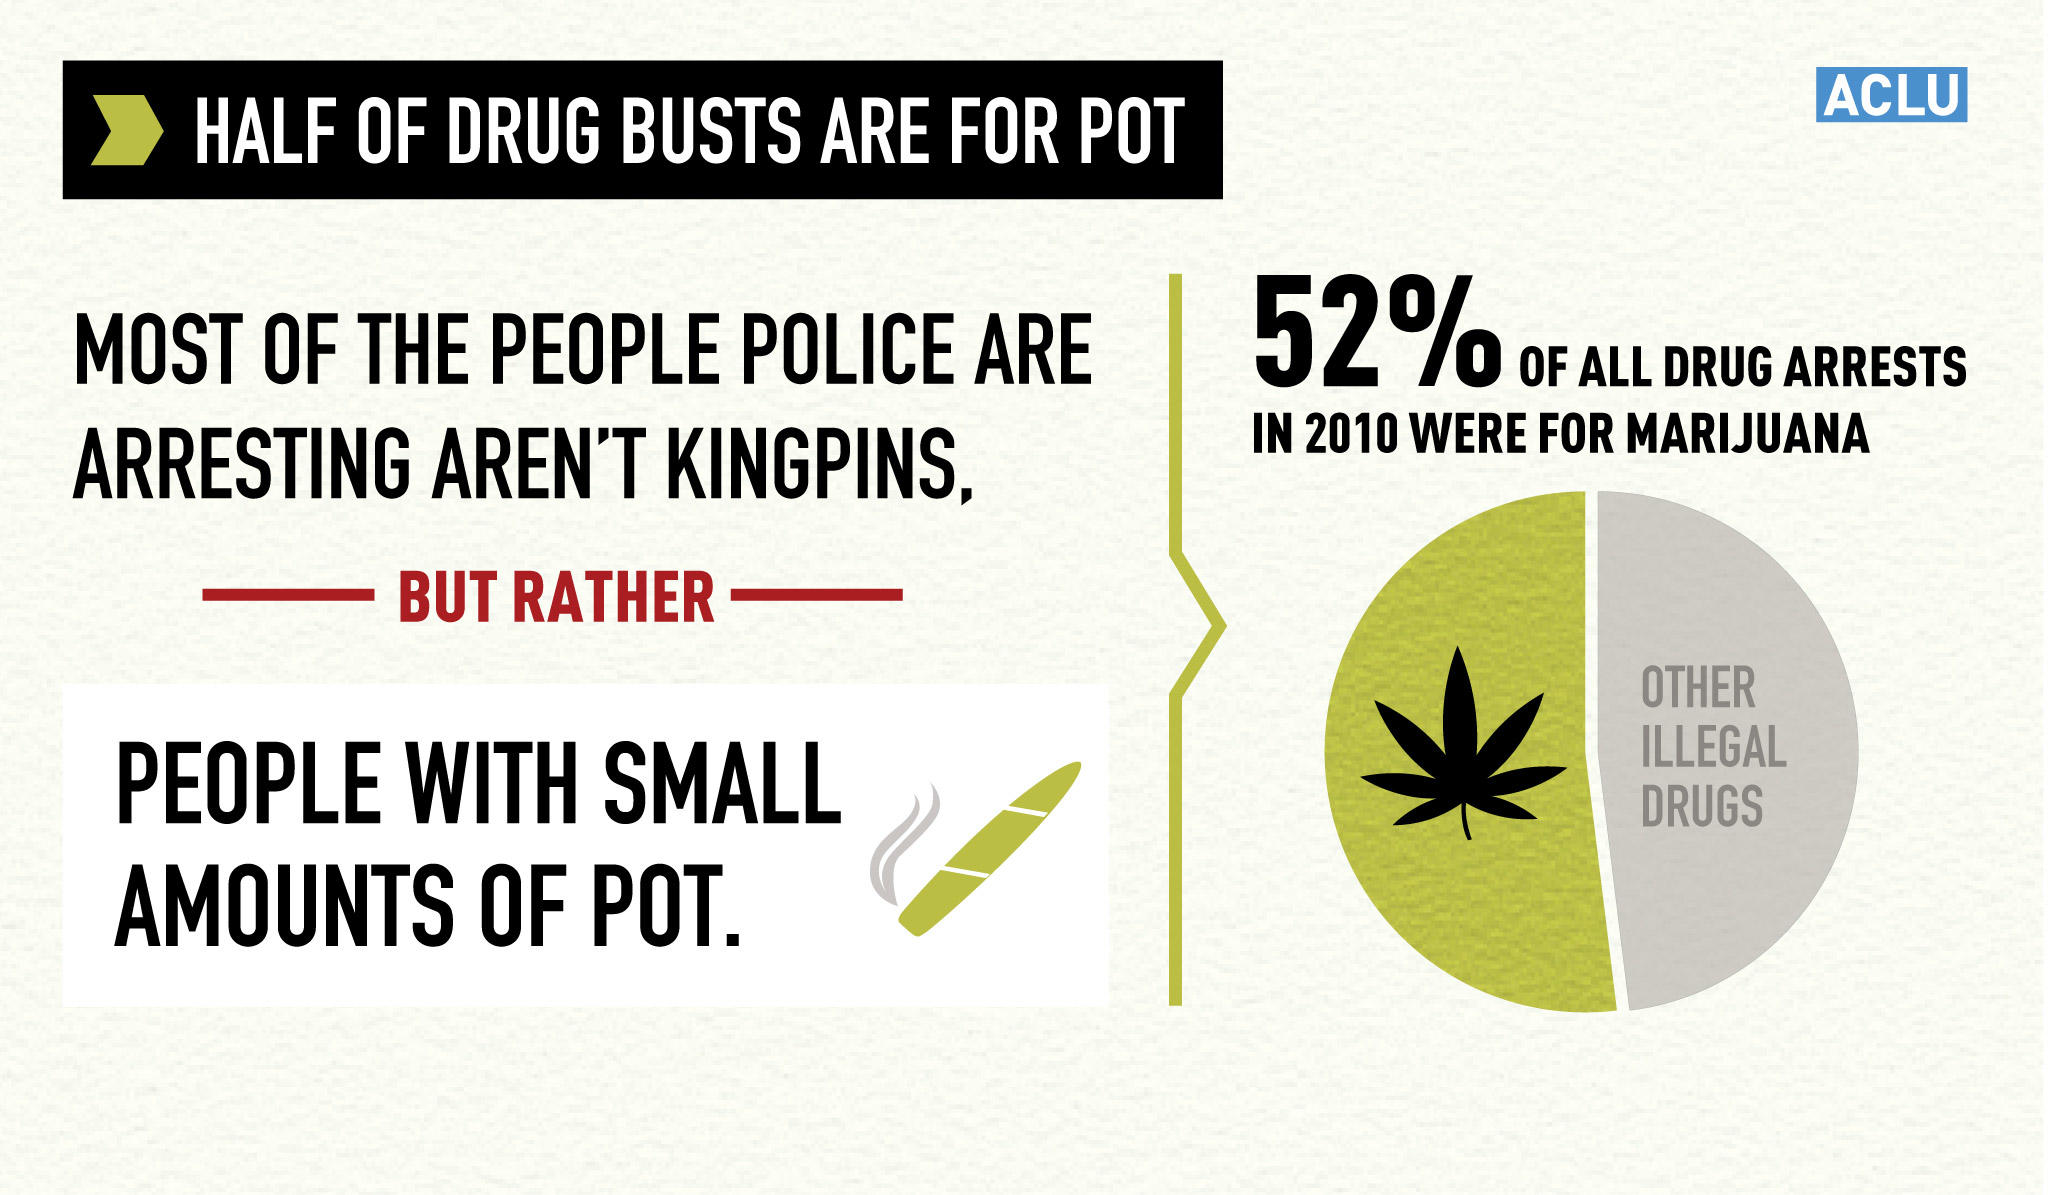 Marijuana Arrests Account for Half of All Drug Arrests